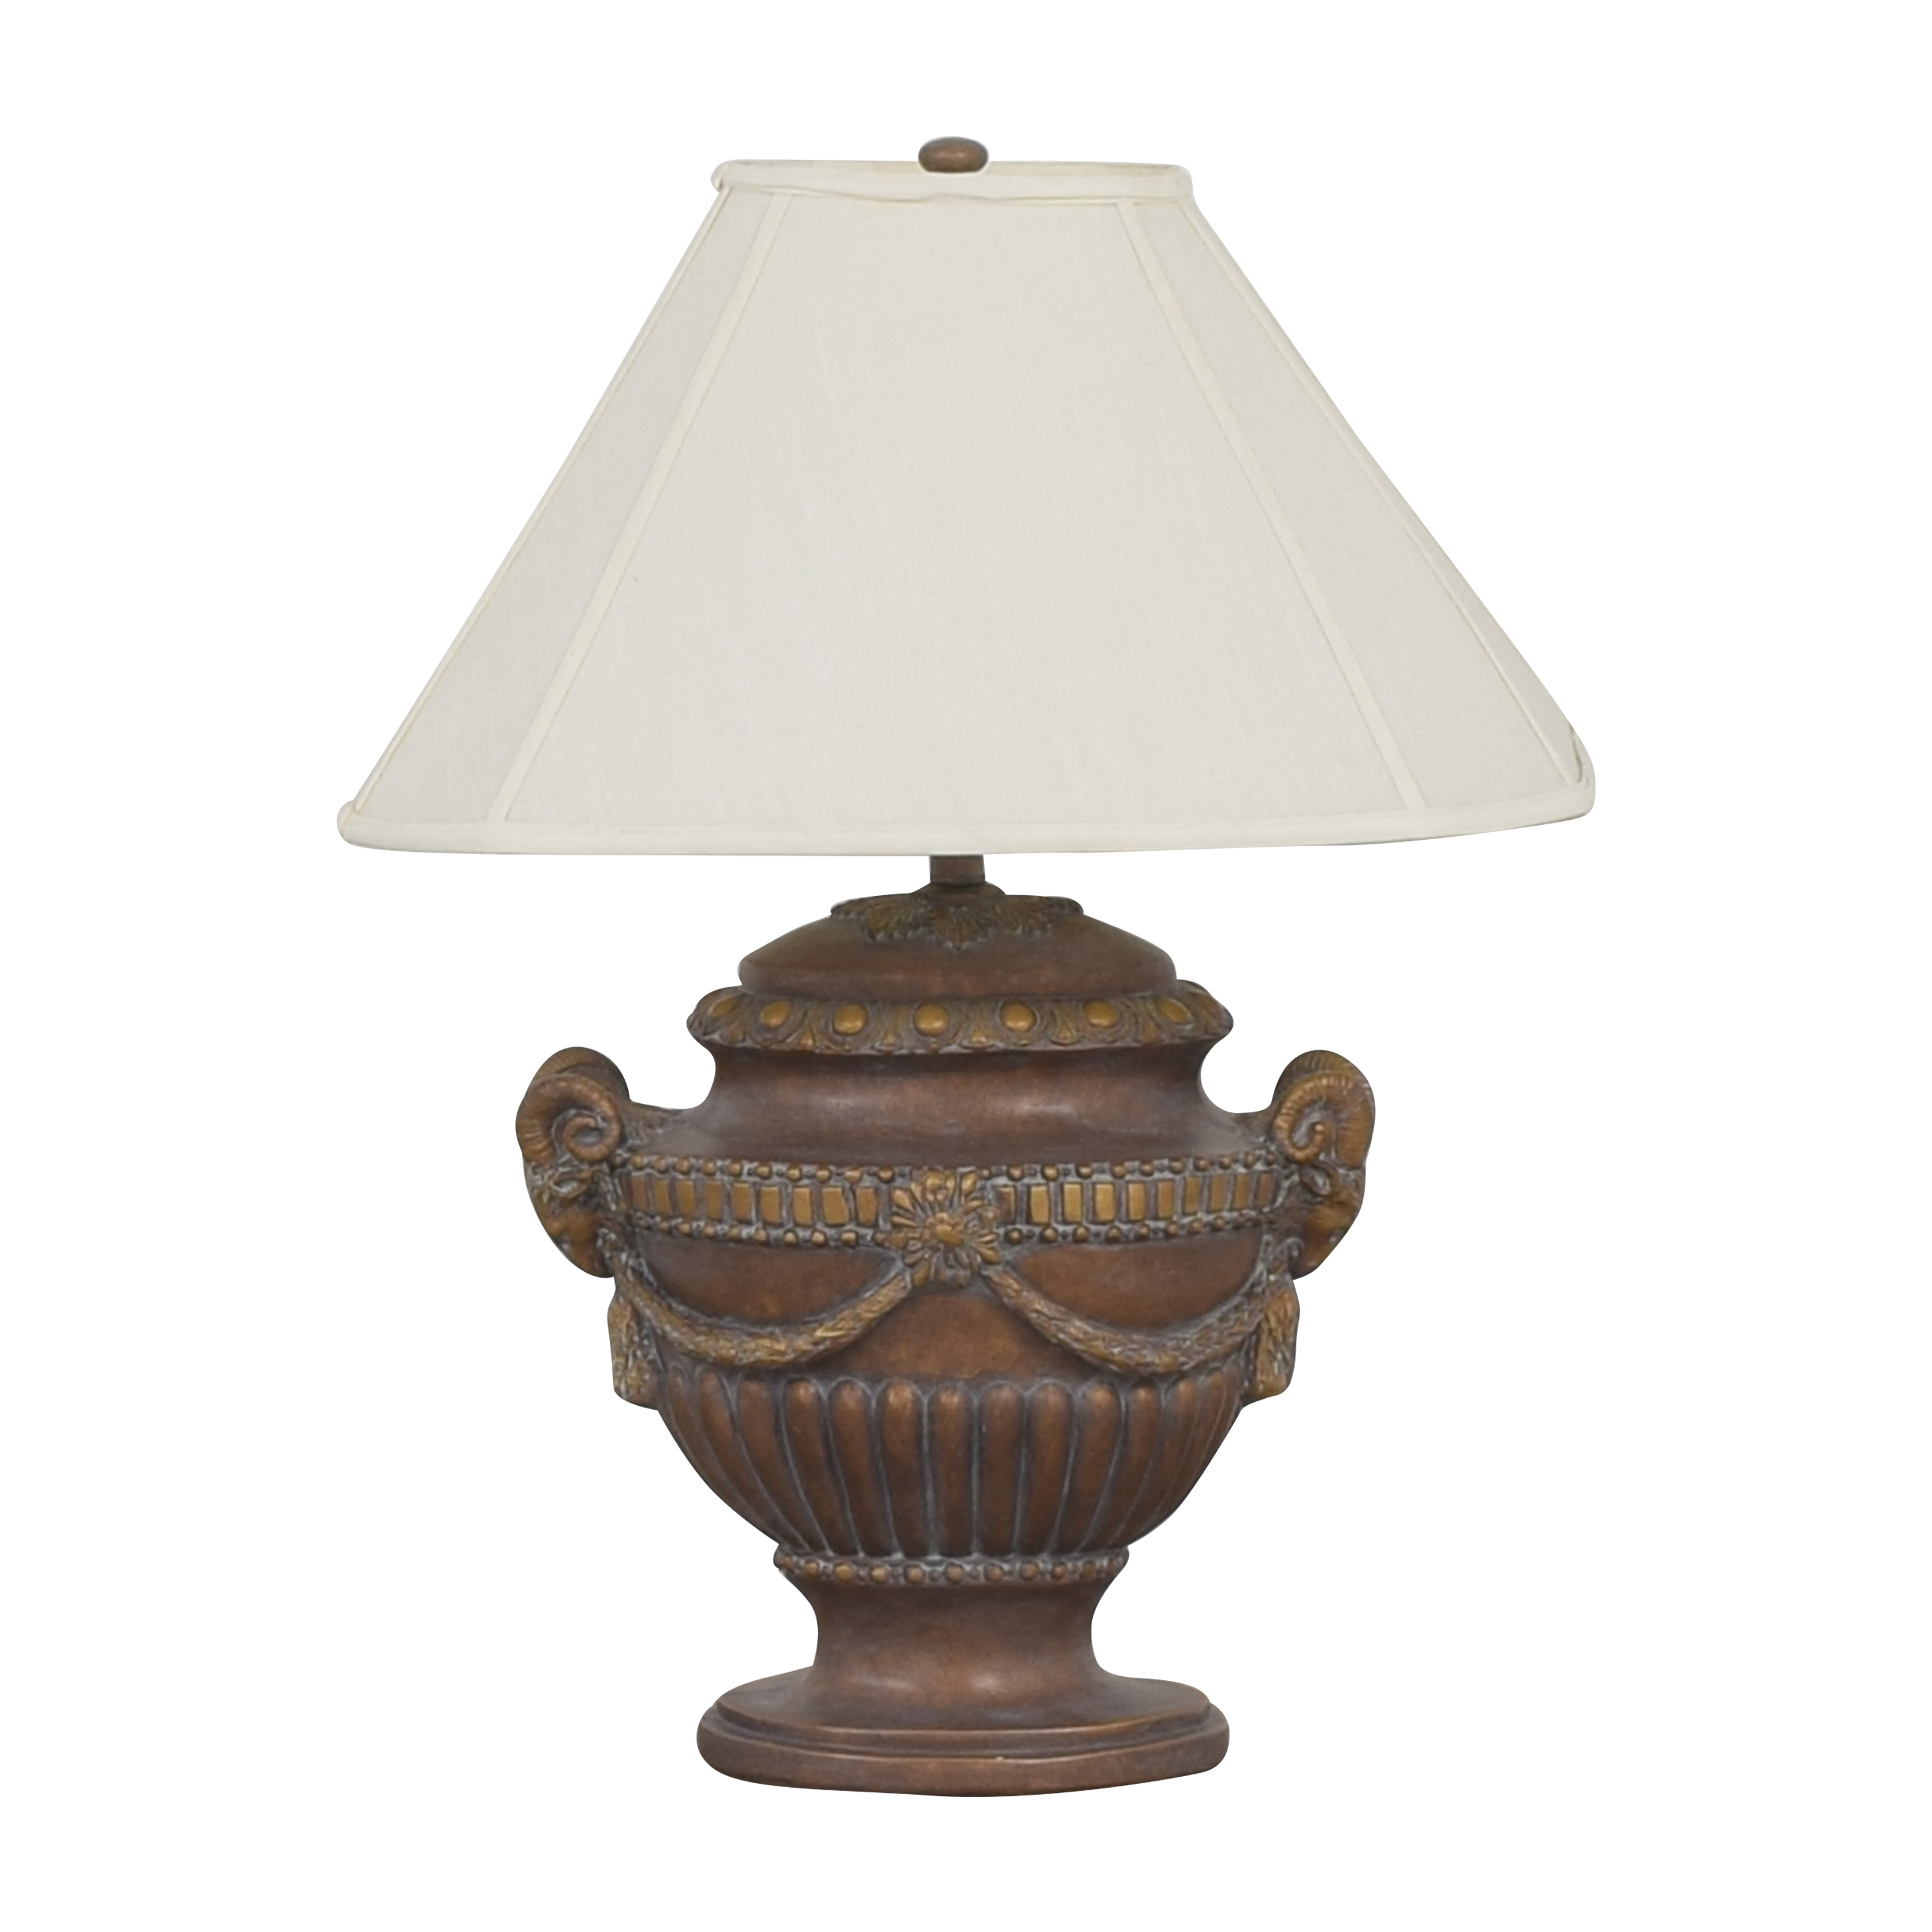 Vase Table Lamp ct